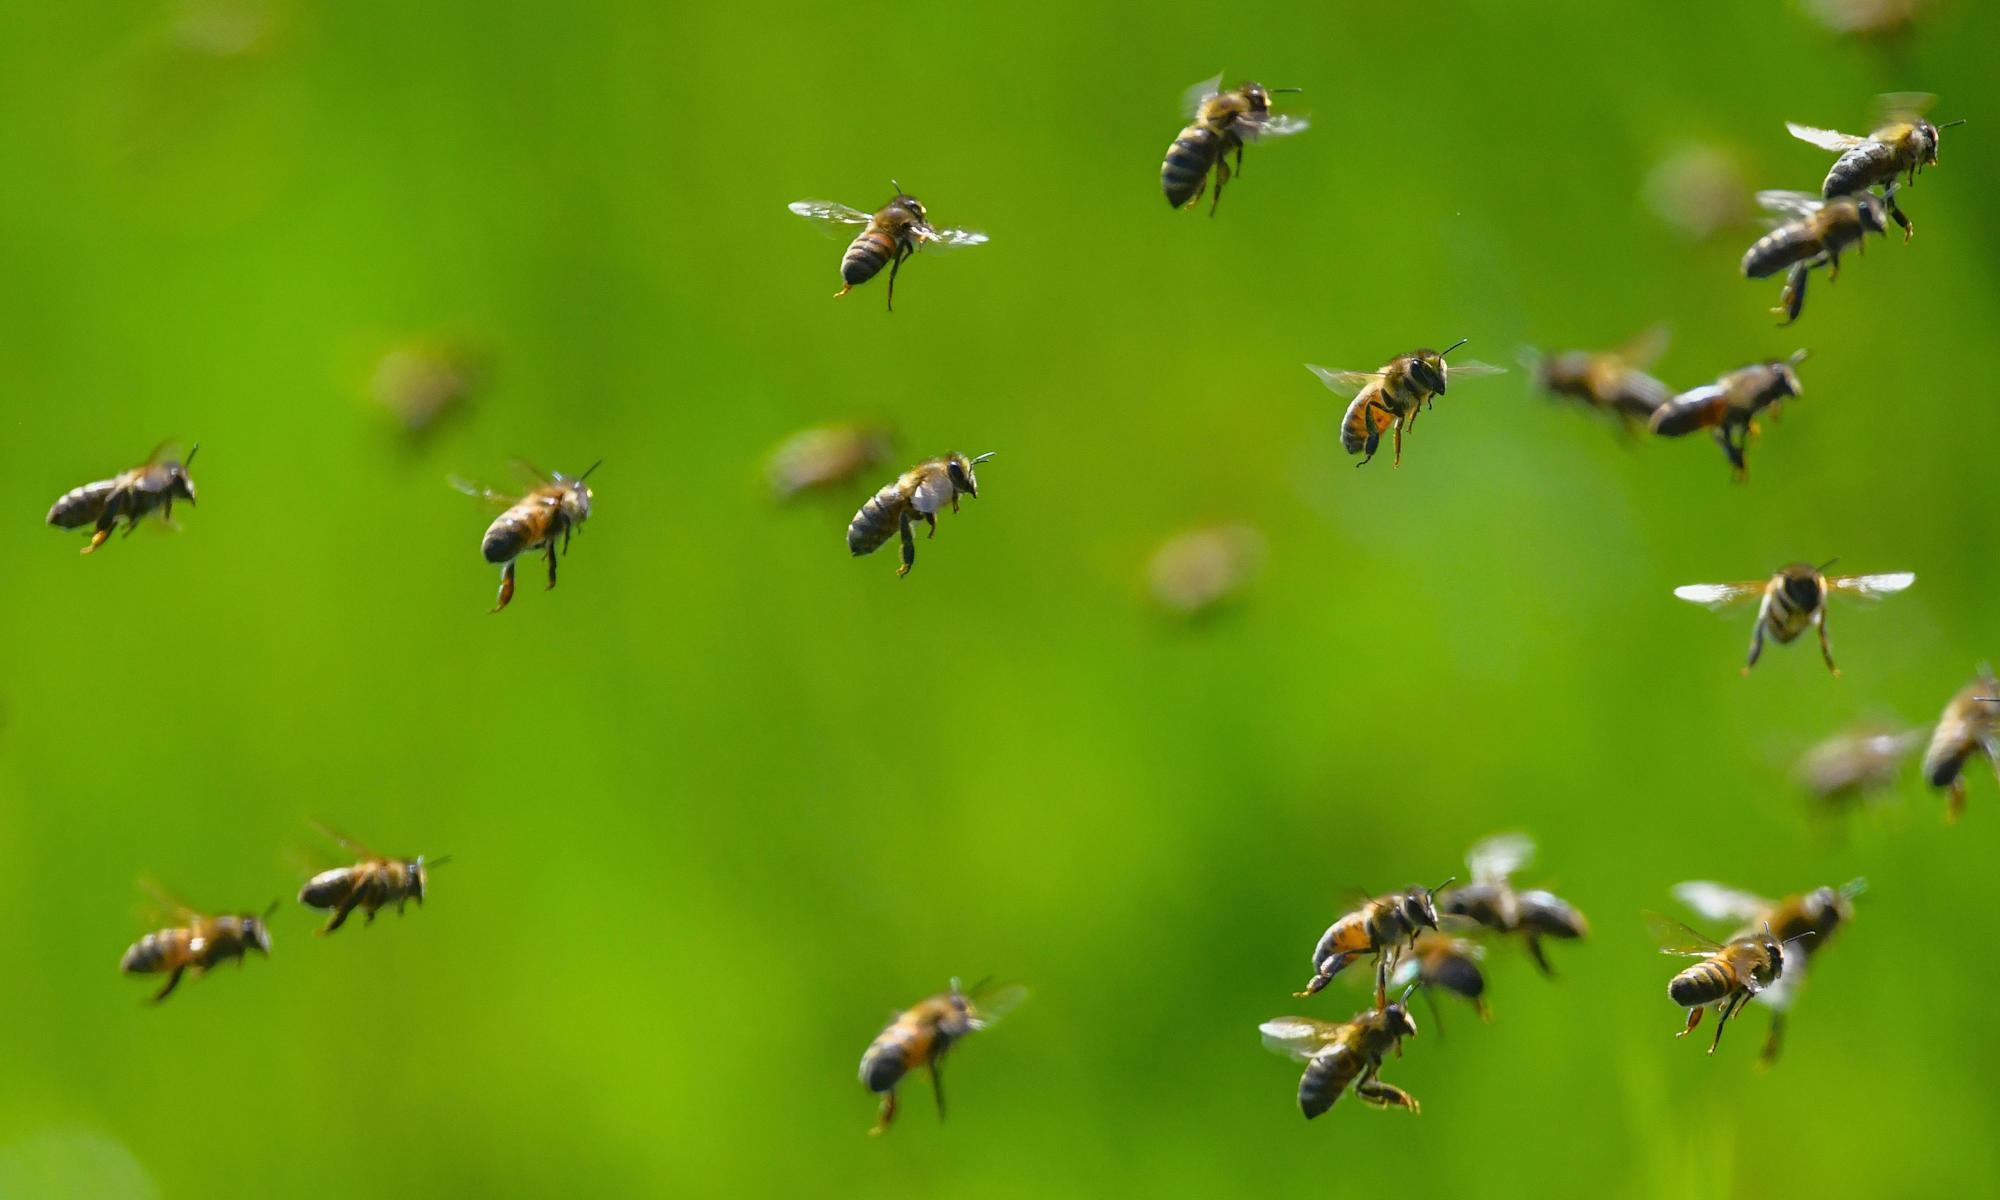 M&S faces backlash over plan to release 30m honeybees